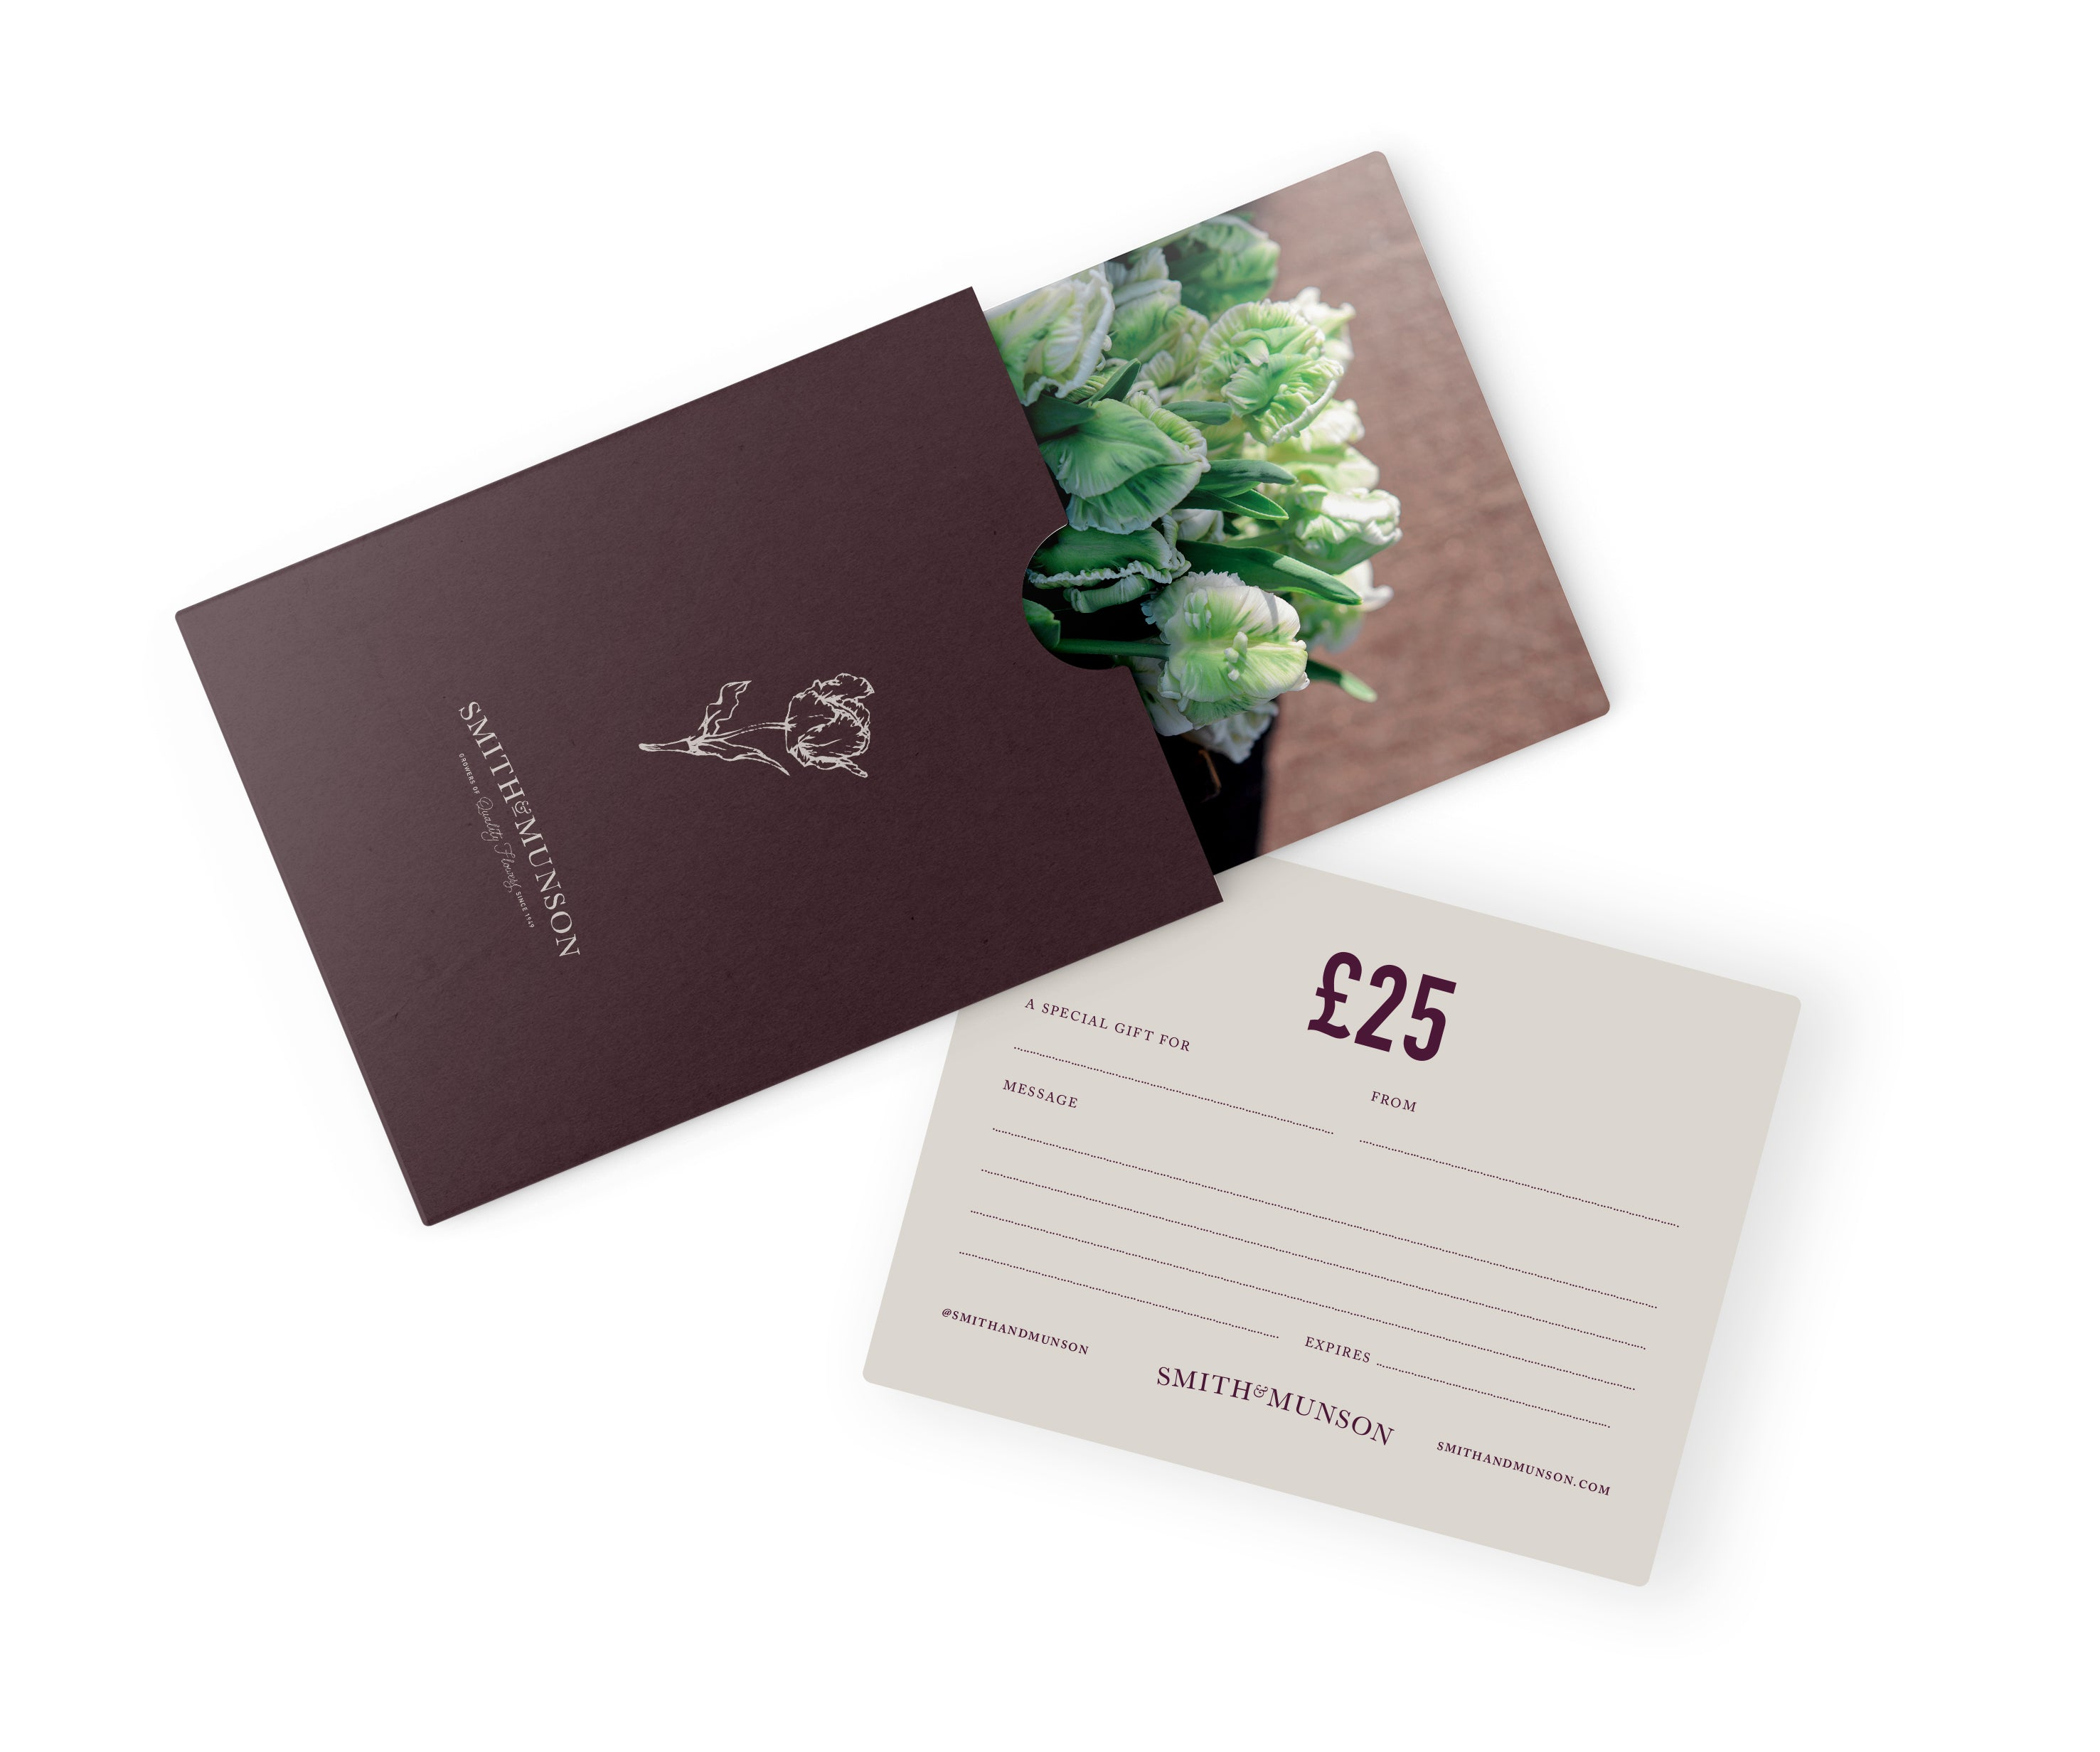 Smith & Munson Tulip Gift Card Voucher